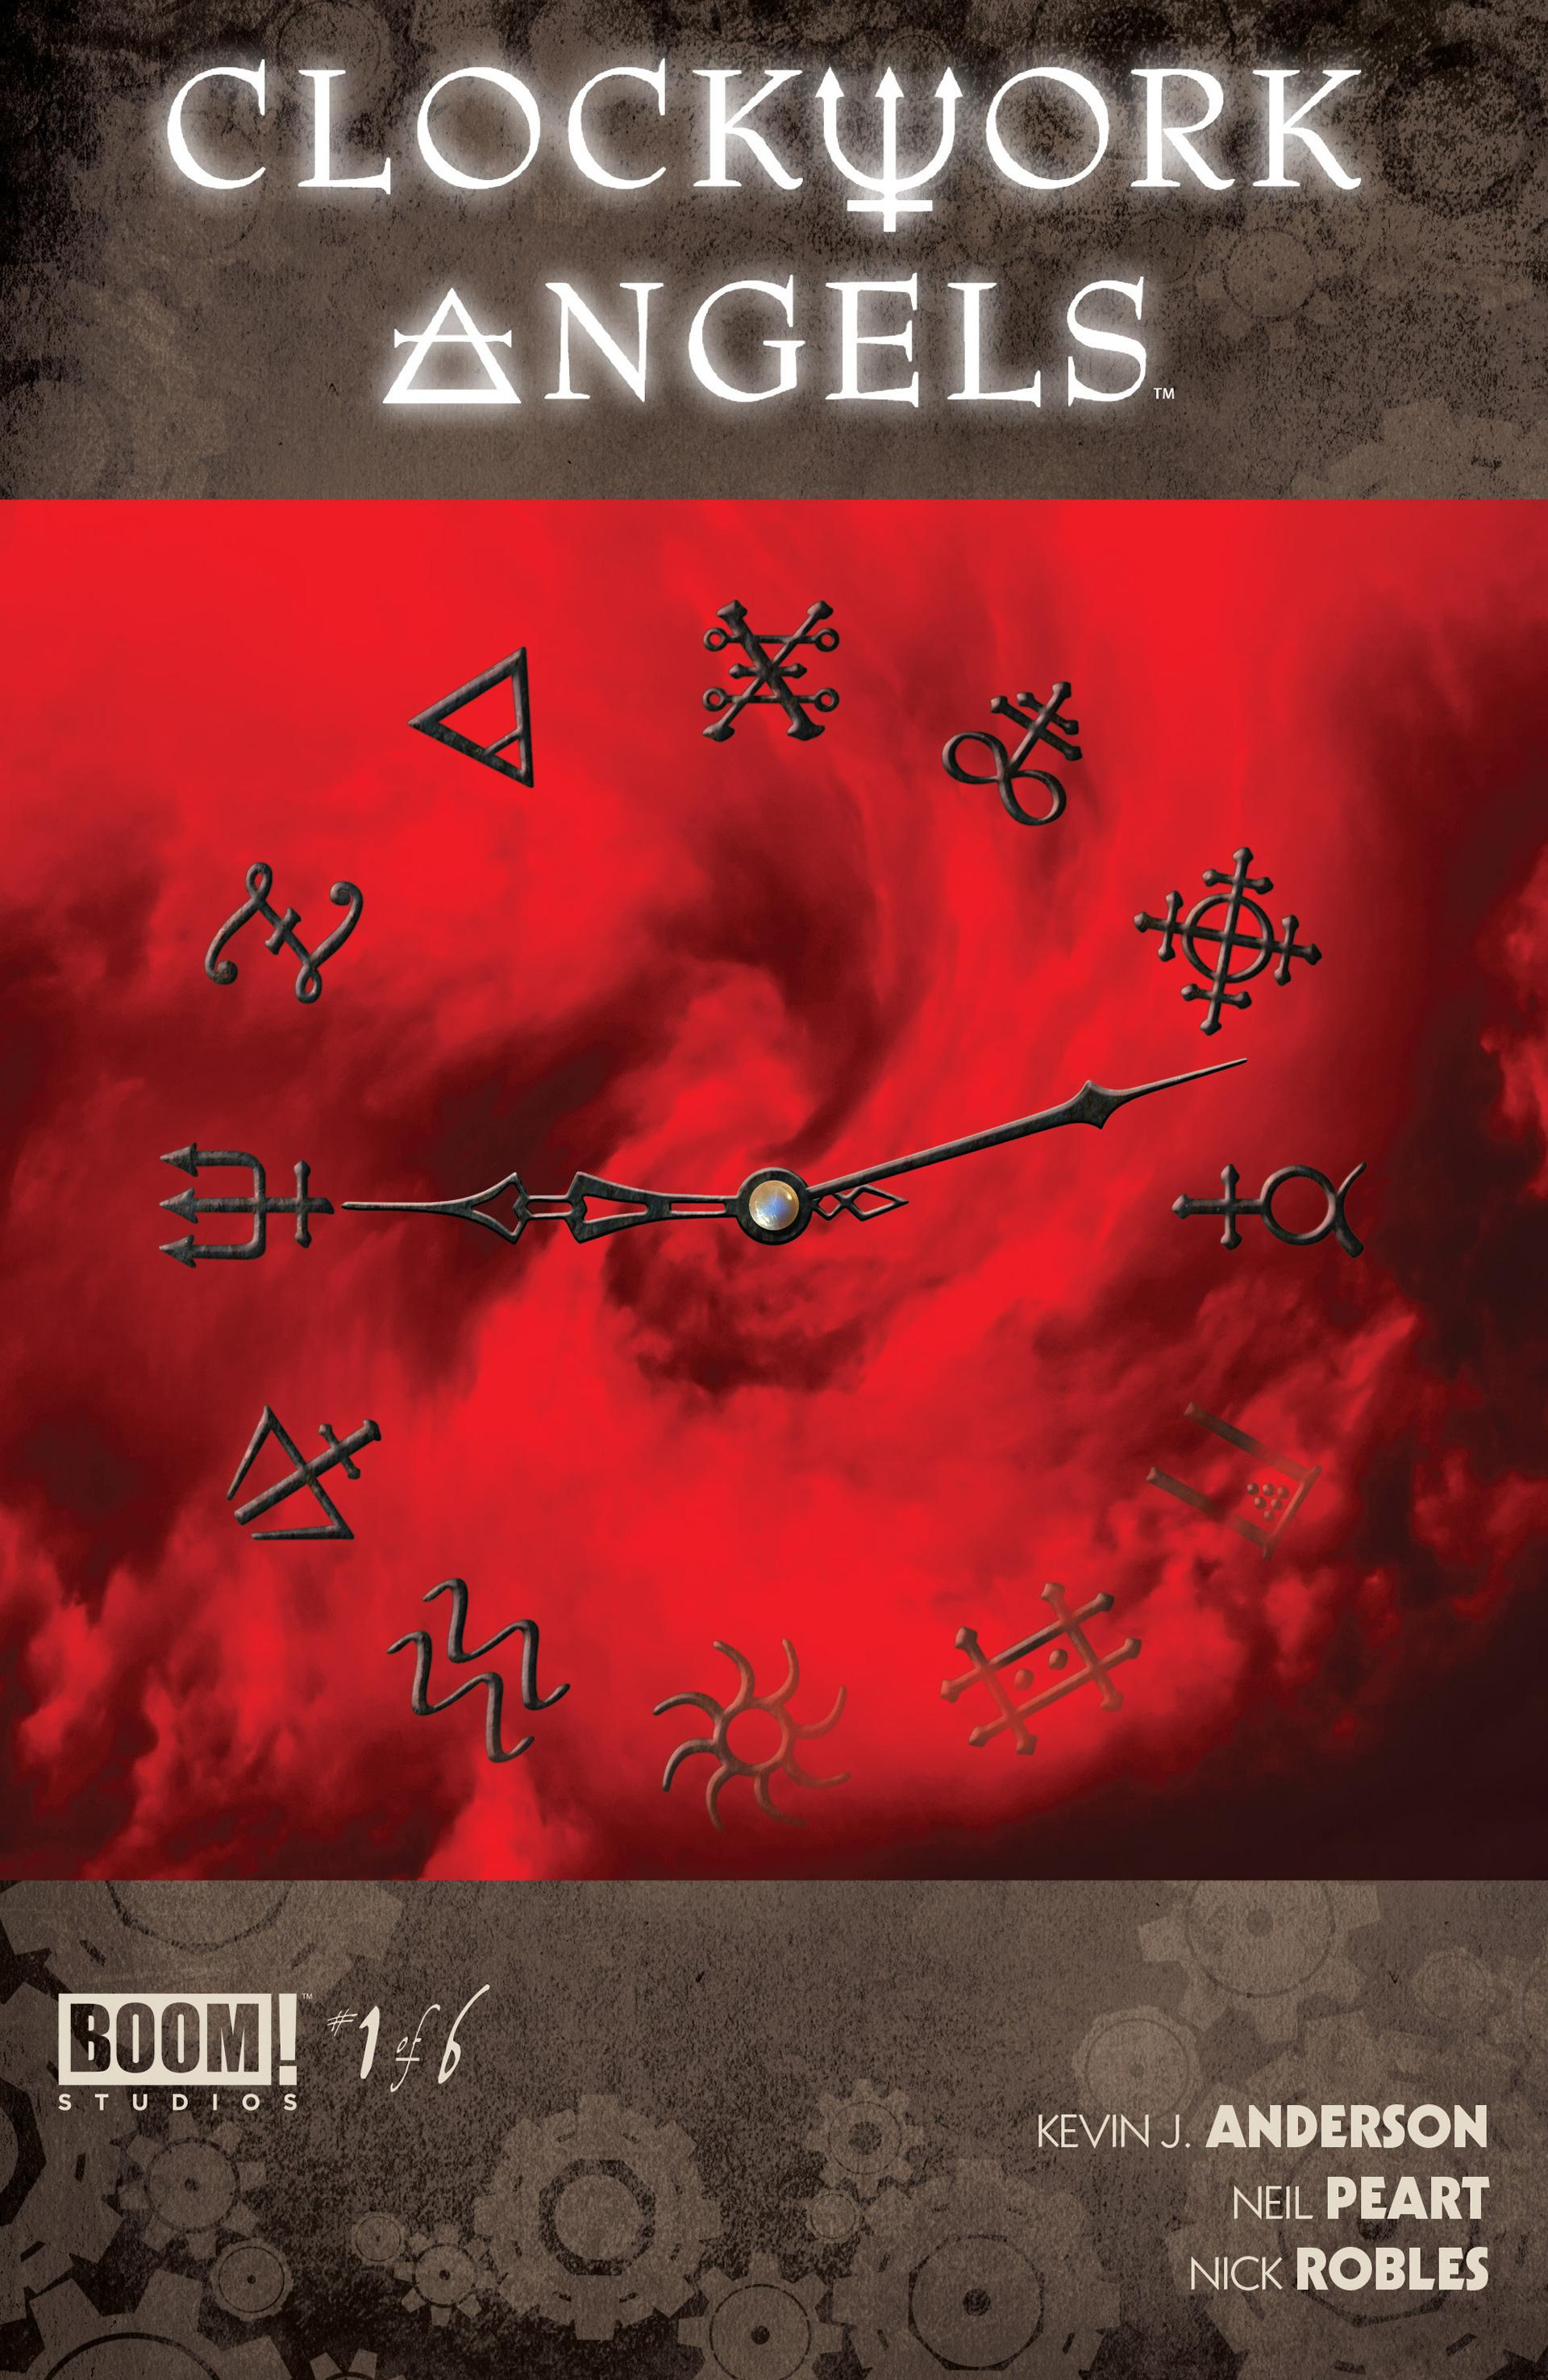 Clockwork Angels 01 of 06 2014 3 covers digital Son of Ultron